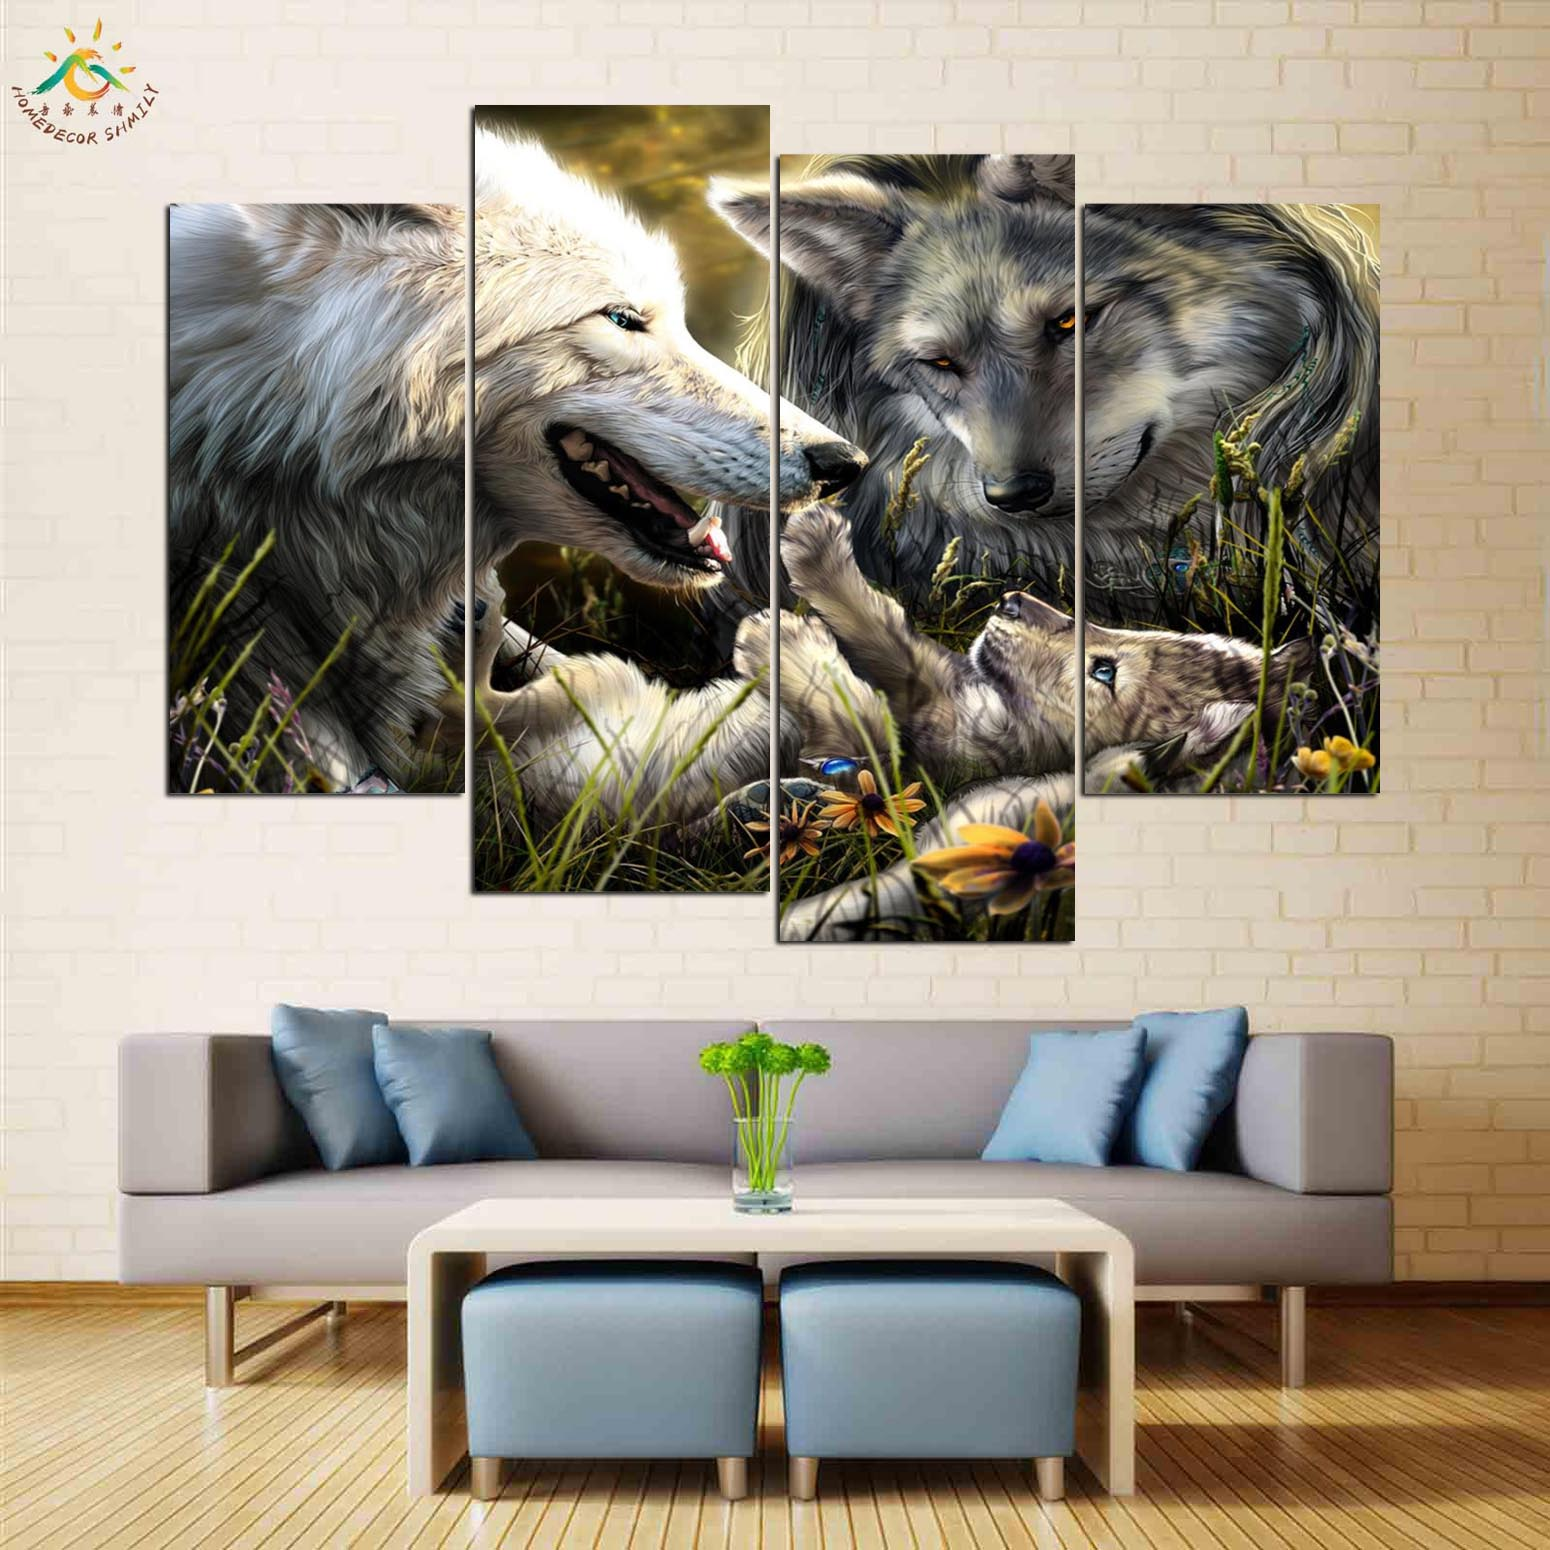 Wolves Family Birth Love Kid Picture And Poster Canvas Painting Modern Wall Art Print Pop Art Wall Pictures Home Decor 4 Pieces in Painting Calligraphy from Home Garden